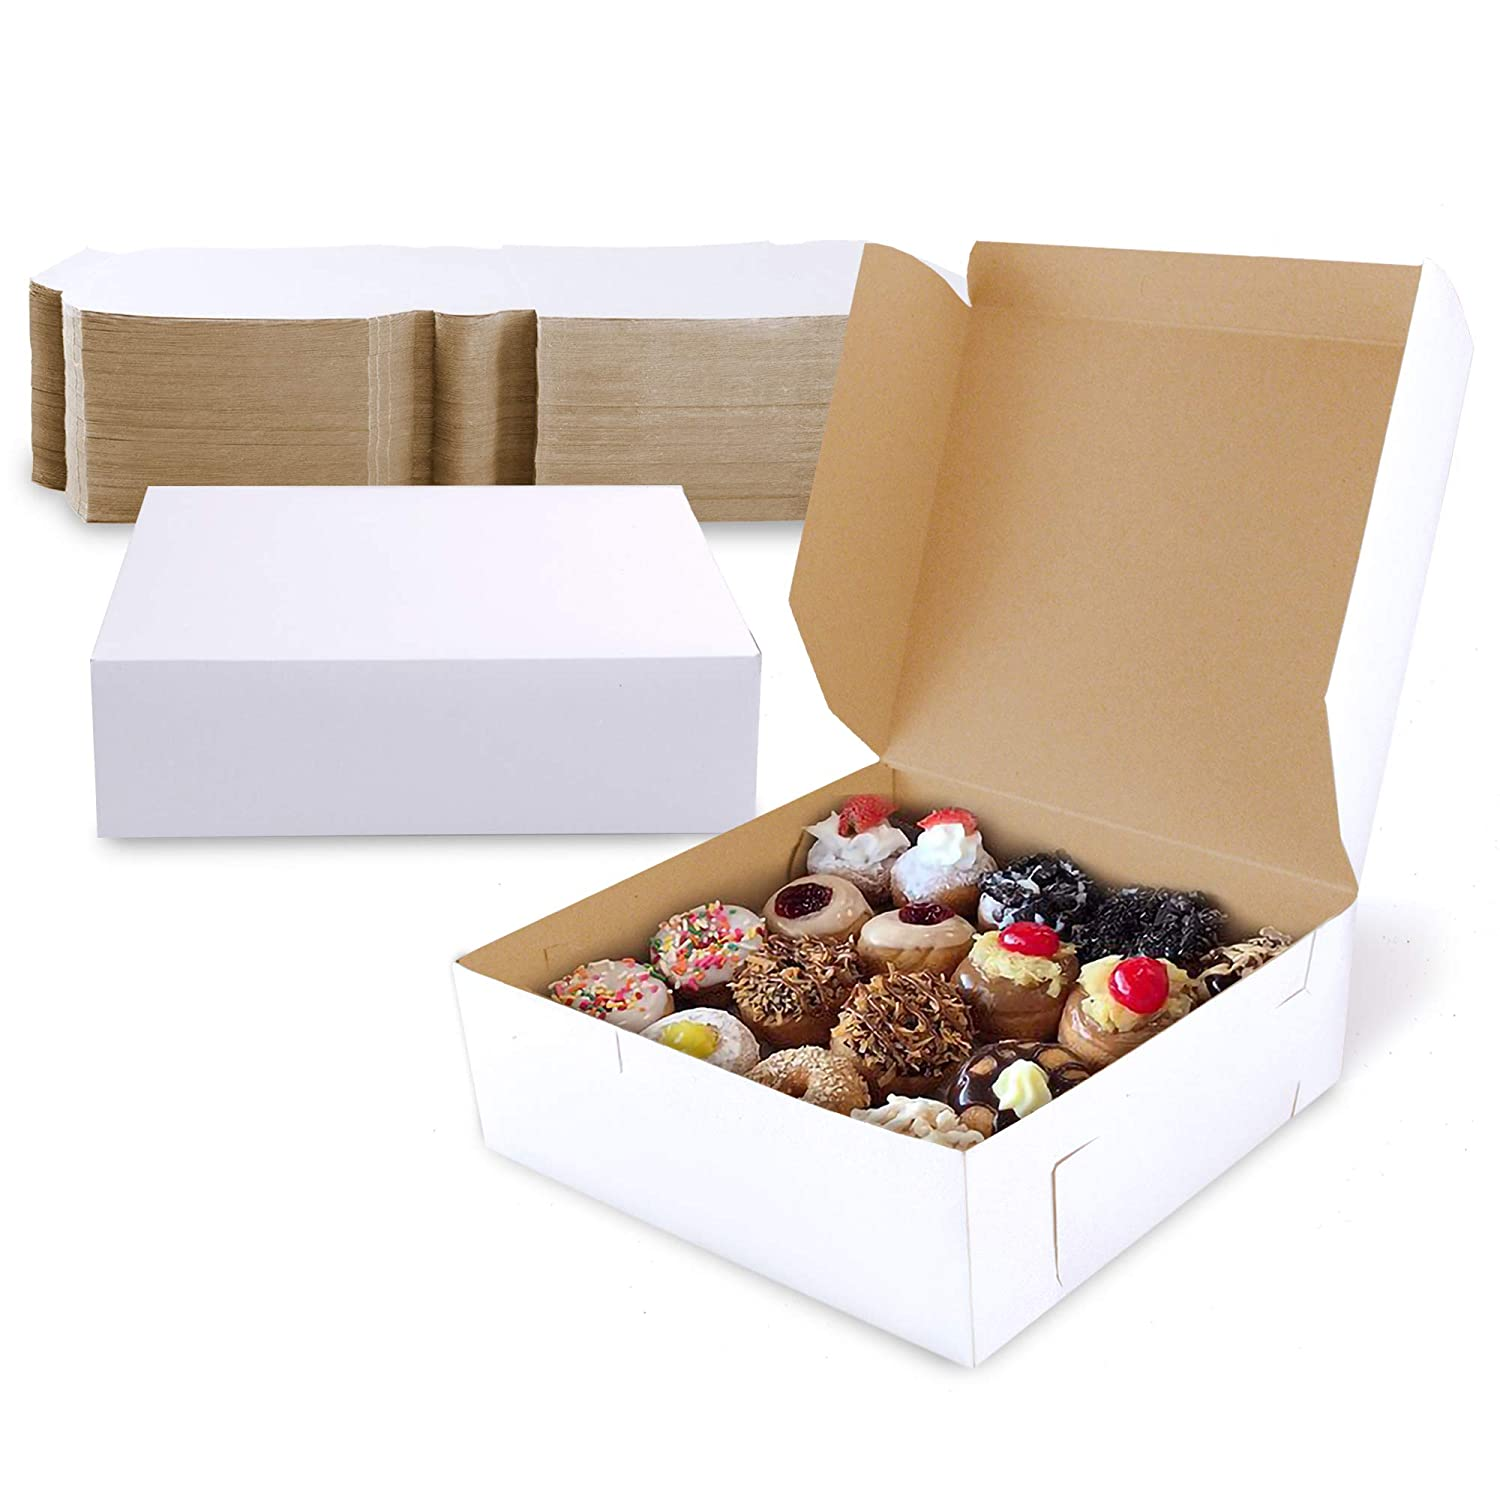 [25 Pack] Pastry Boxes - 9 x 9 x 2.5 Inch White Bakery Box for Cookies, Compostable Kraft Paper Cardboard for Baked Goods Packaging, Cake, Food Treat, Donut, Cupcake, Candy, Bread, Bridesmaid Gift Box